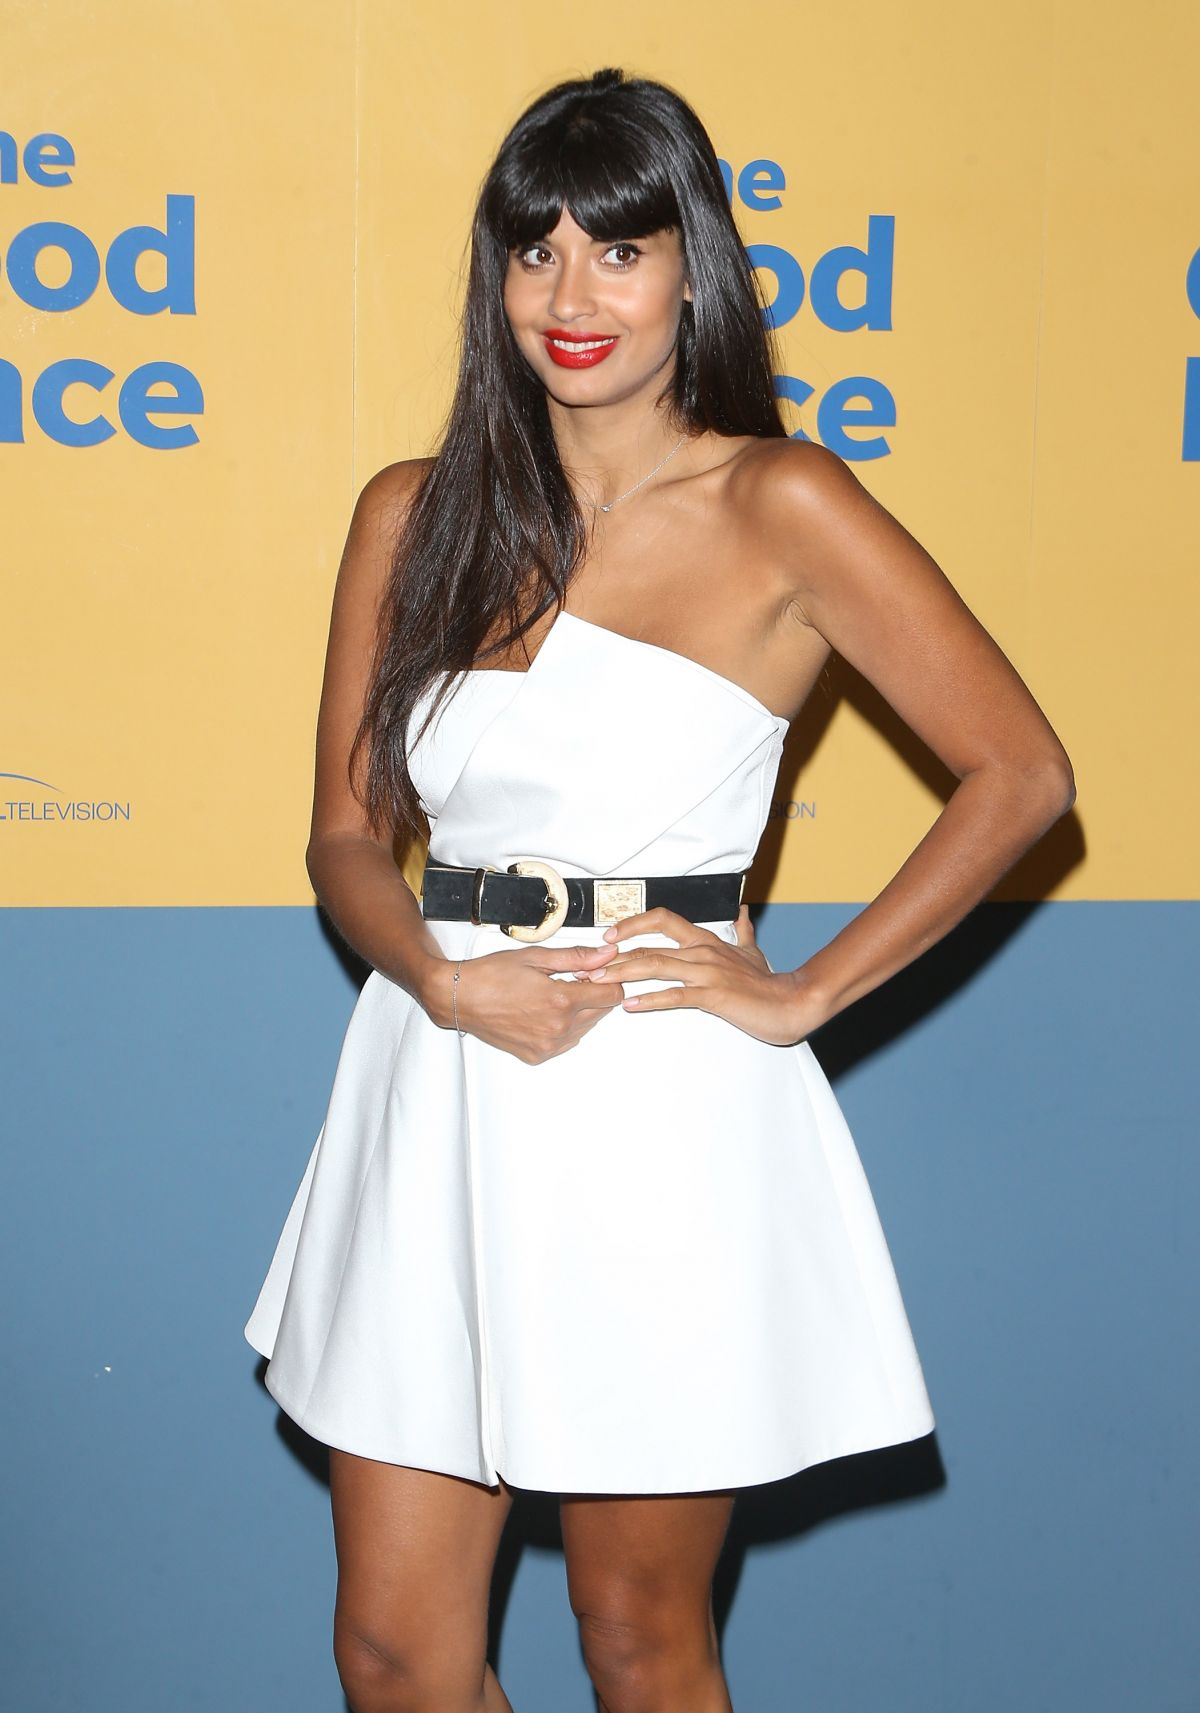 JAMEELA JAMIL at The Good Place FYC Event in Los Angeles 06/12/2017